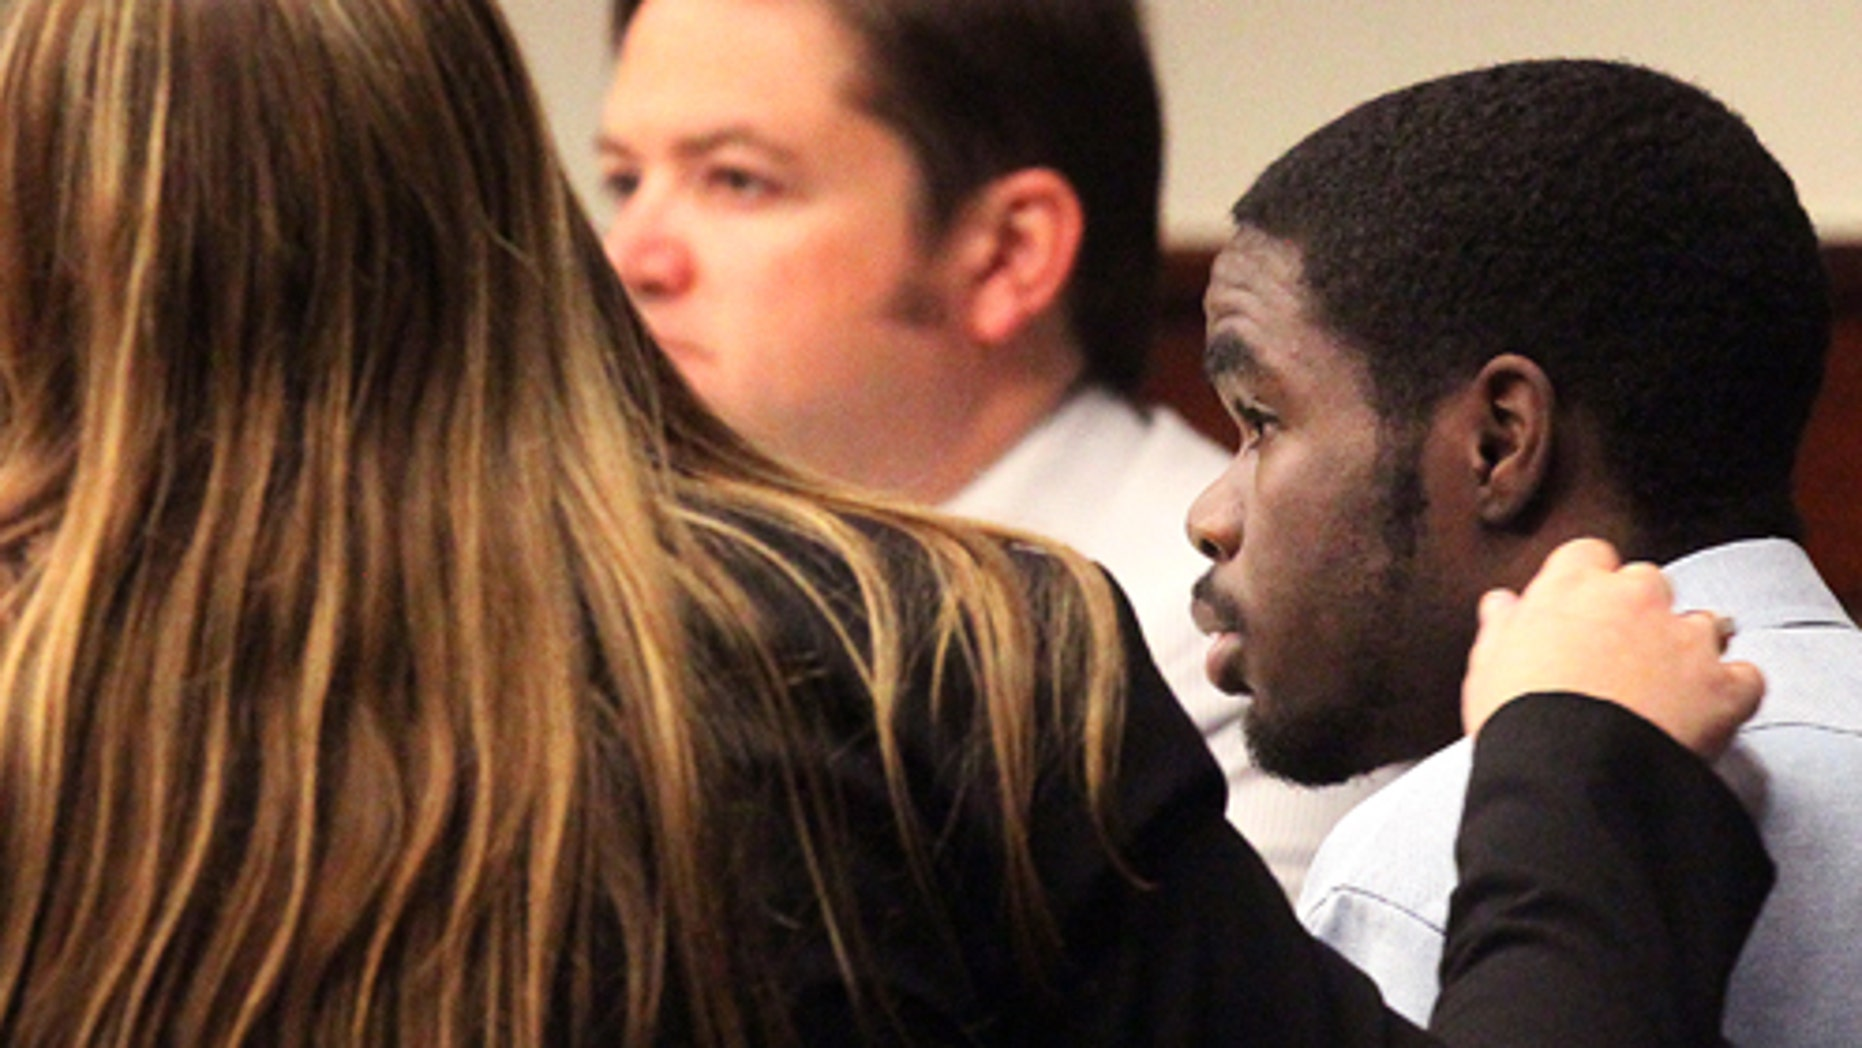 A member of the defense team put her hand on De'Marquise Elkins' shoulder as he was found guilty of all charges at Cobb Superior Court in Marietta, Ga. on Friday, Aug. 2013.  Jurors deliberated about two hours before finding  Elkins guilty of 11 counts, including two counts of felony murder and one count of malice murder in the March 21 killing of 13-month-old Antonio Santiago in Brunswick. The man's mother, Karimah Elkins, was on trial alongside him and was found guilty of tampering with evidence but acquitted of lying to police. De'Marquise Elkins faces life in prison when he is sentenced at a later date. At the time of the shooting he was 17, too young to face the death penalty under Georgia law.  (AP Photo/Atlanta Journal-Constitution, Phil Skinner)  MARIETTA DAILY OUT; GWINNETT DAILY POST OUT; LOCAL TV OUT; WXIA-TV OUT; WGCL-TV OUT